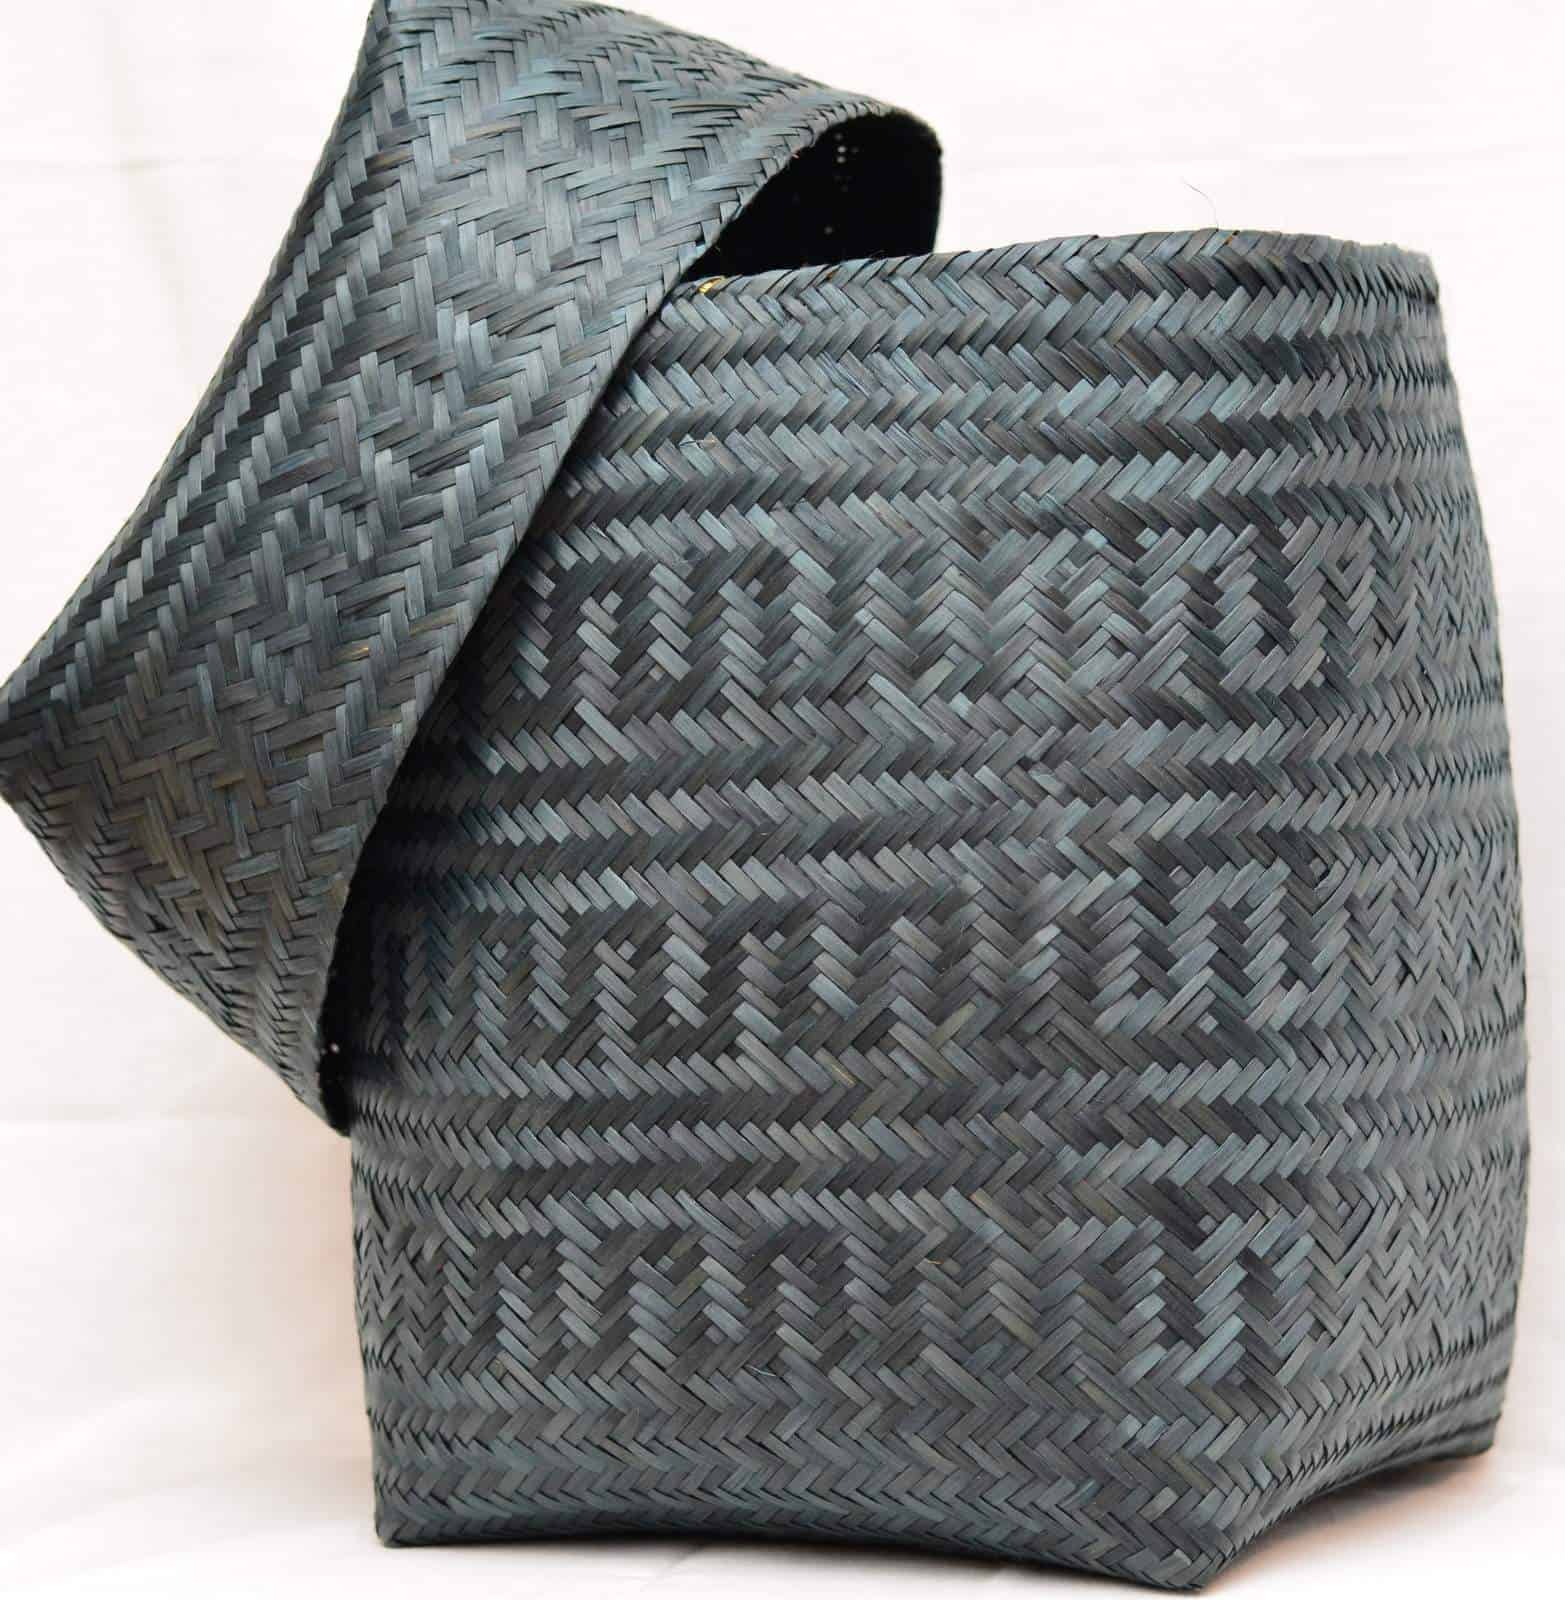 Paja Tetera Basket with Snake Pattern